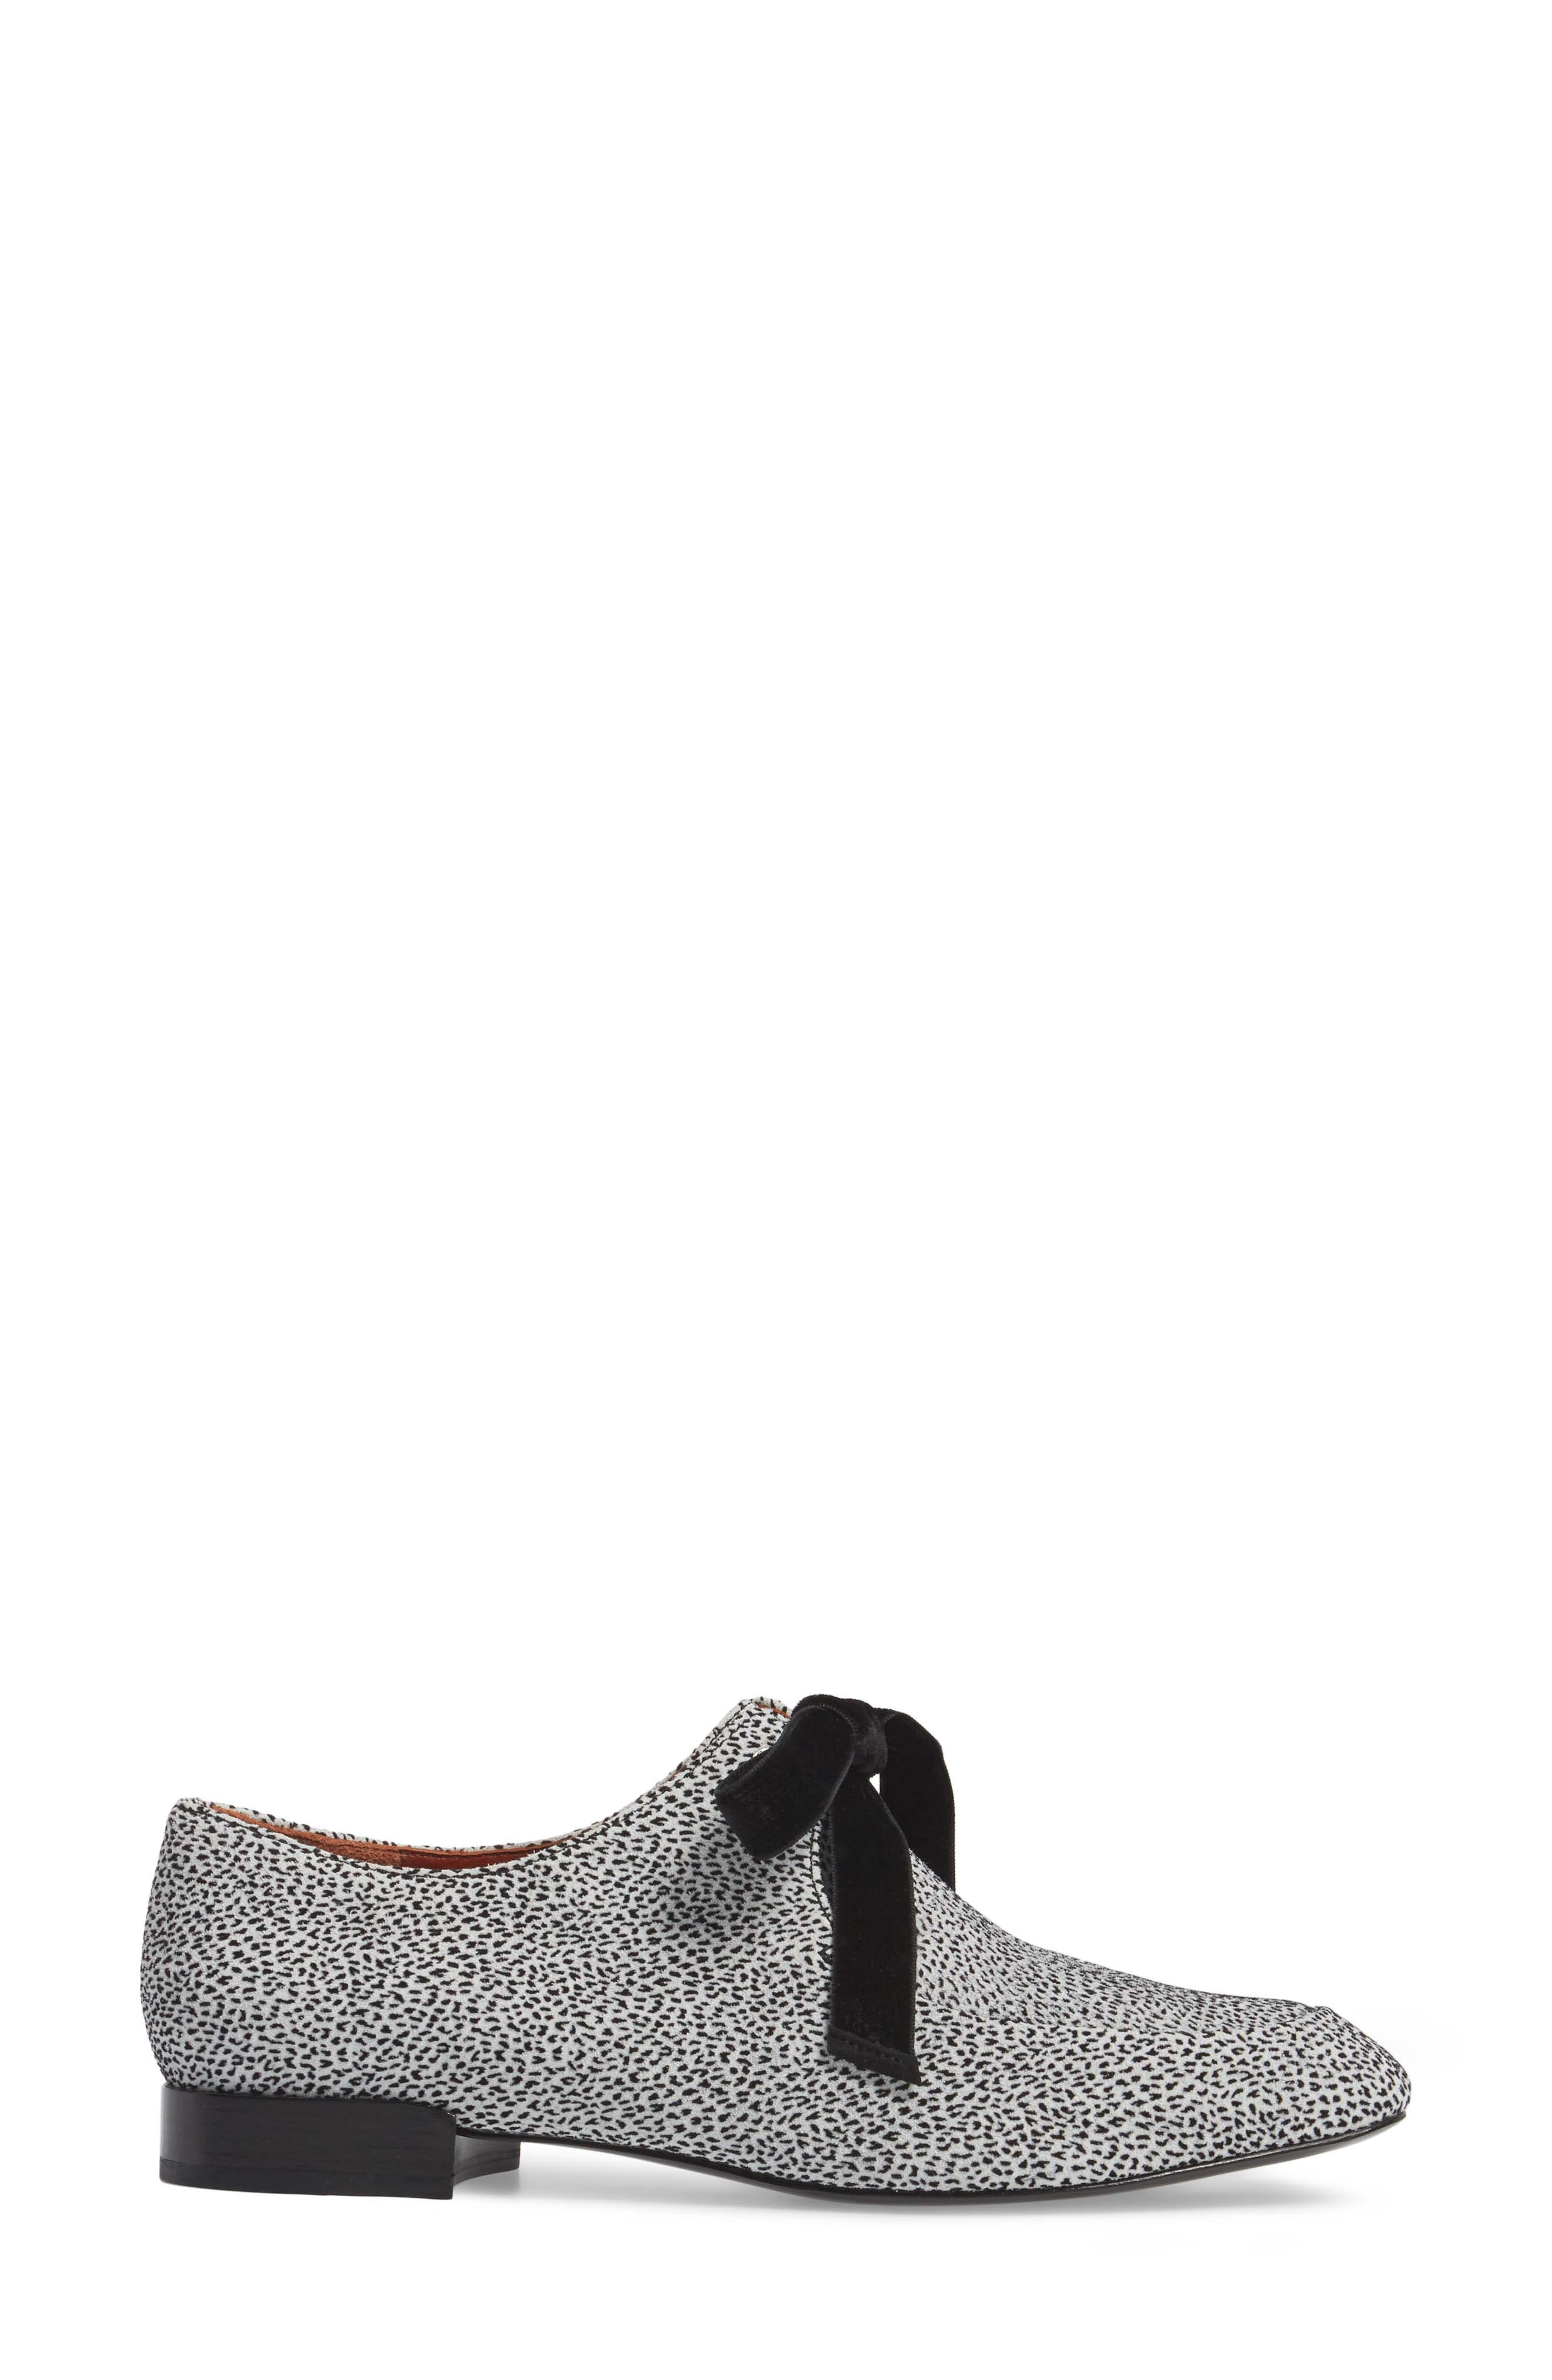 Alternate Image 3  - 3.1 Philip Lim Velvet Bow Loafer (Women)